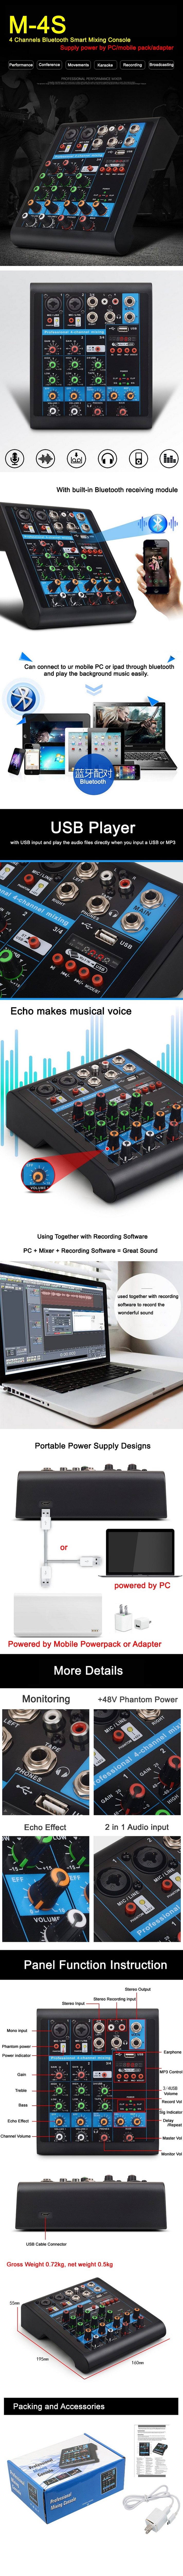 Tiwastage M4S 4 channel mixing console with bluetooth sound effect